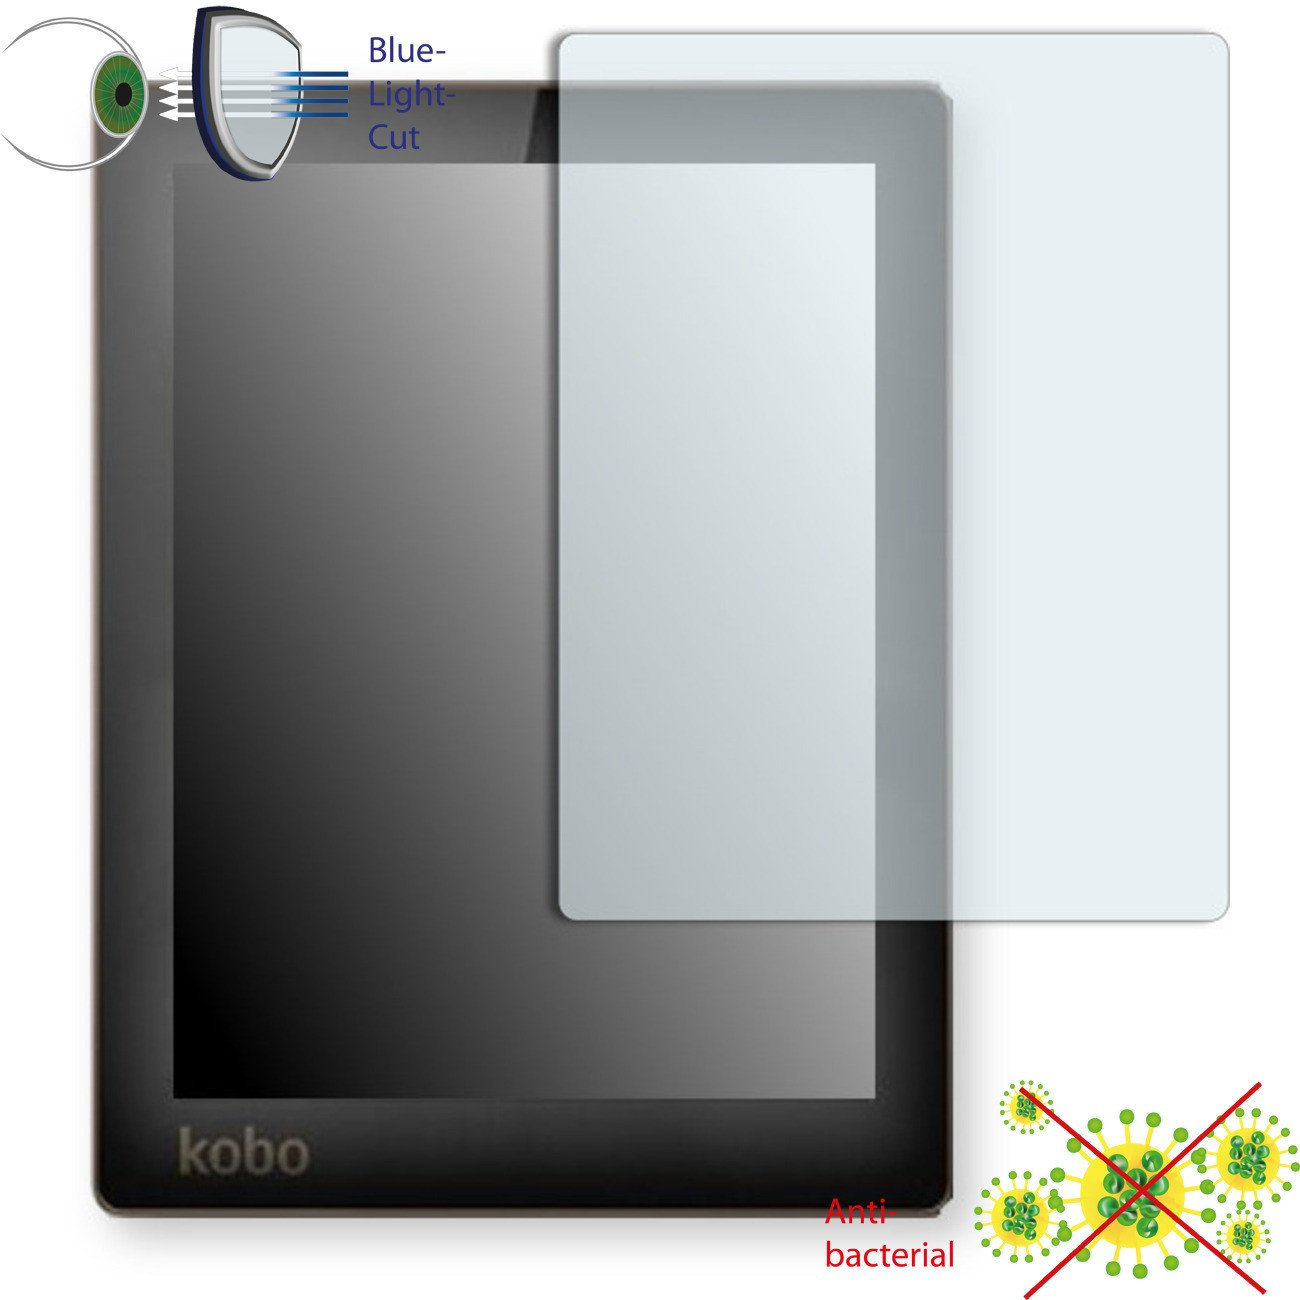 1 x DISAGU ClearScreen screen protection film for Kobo Aura antibacterial, BlueLight filter protective film #dh6094